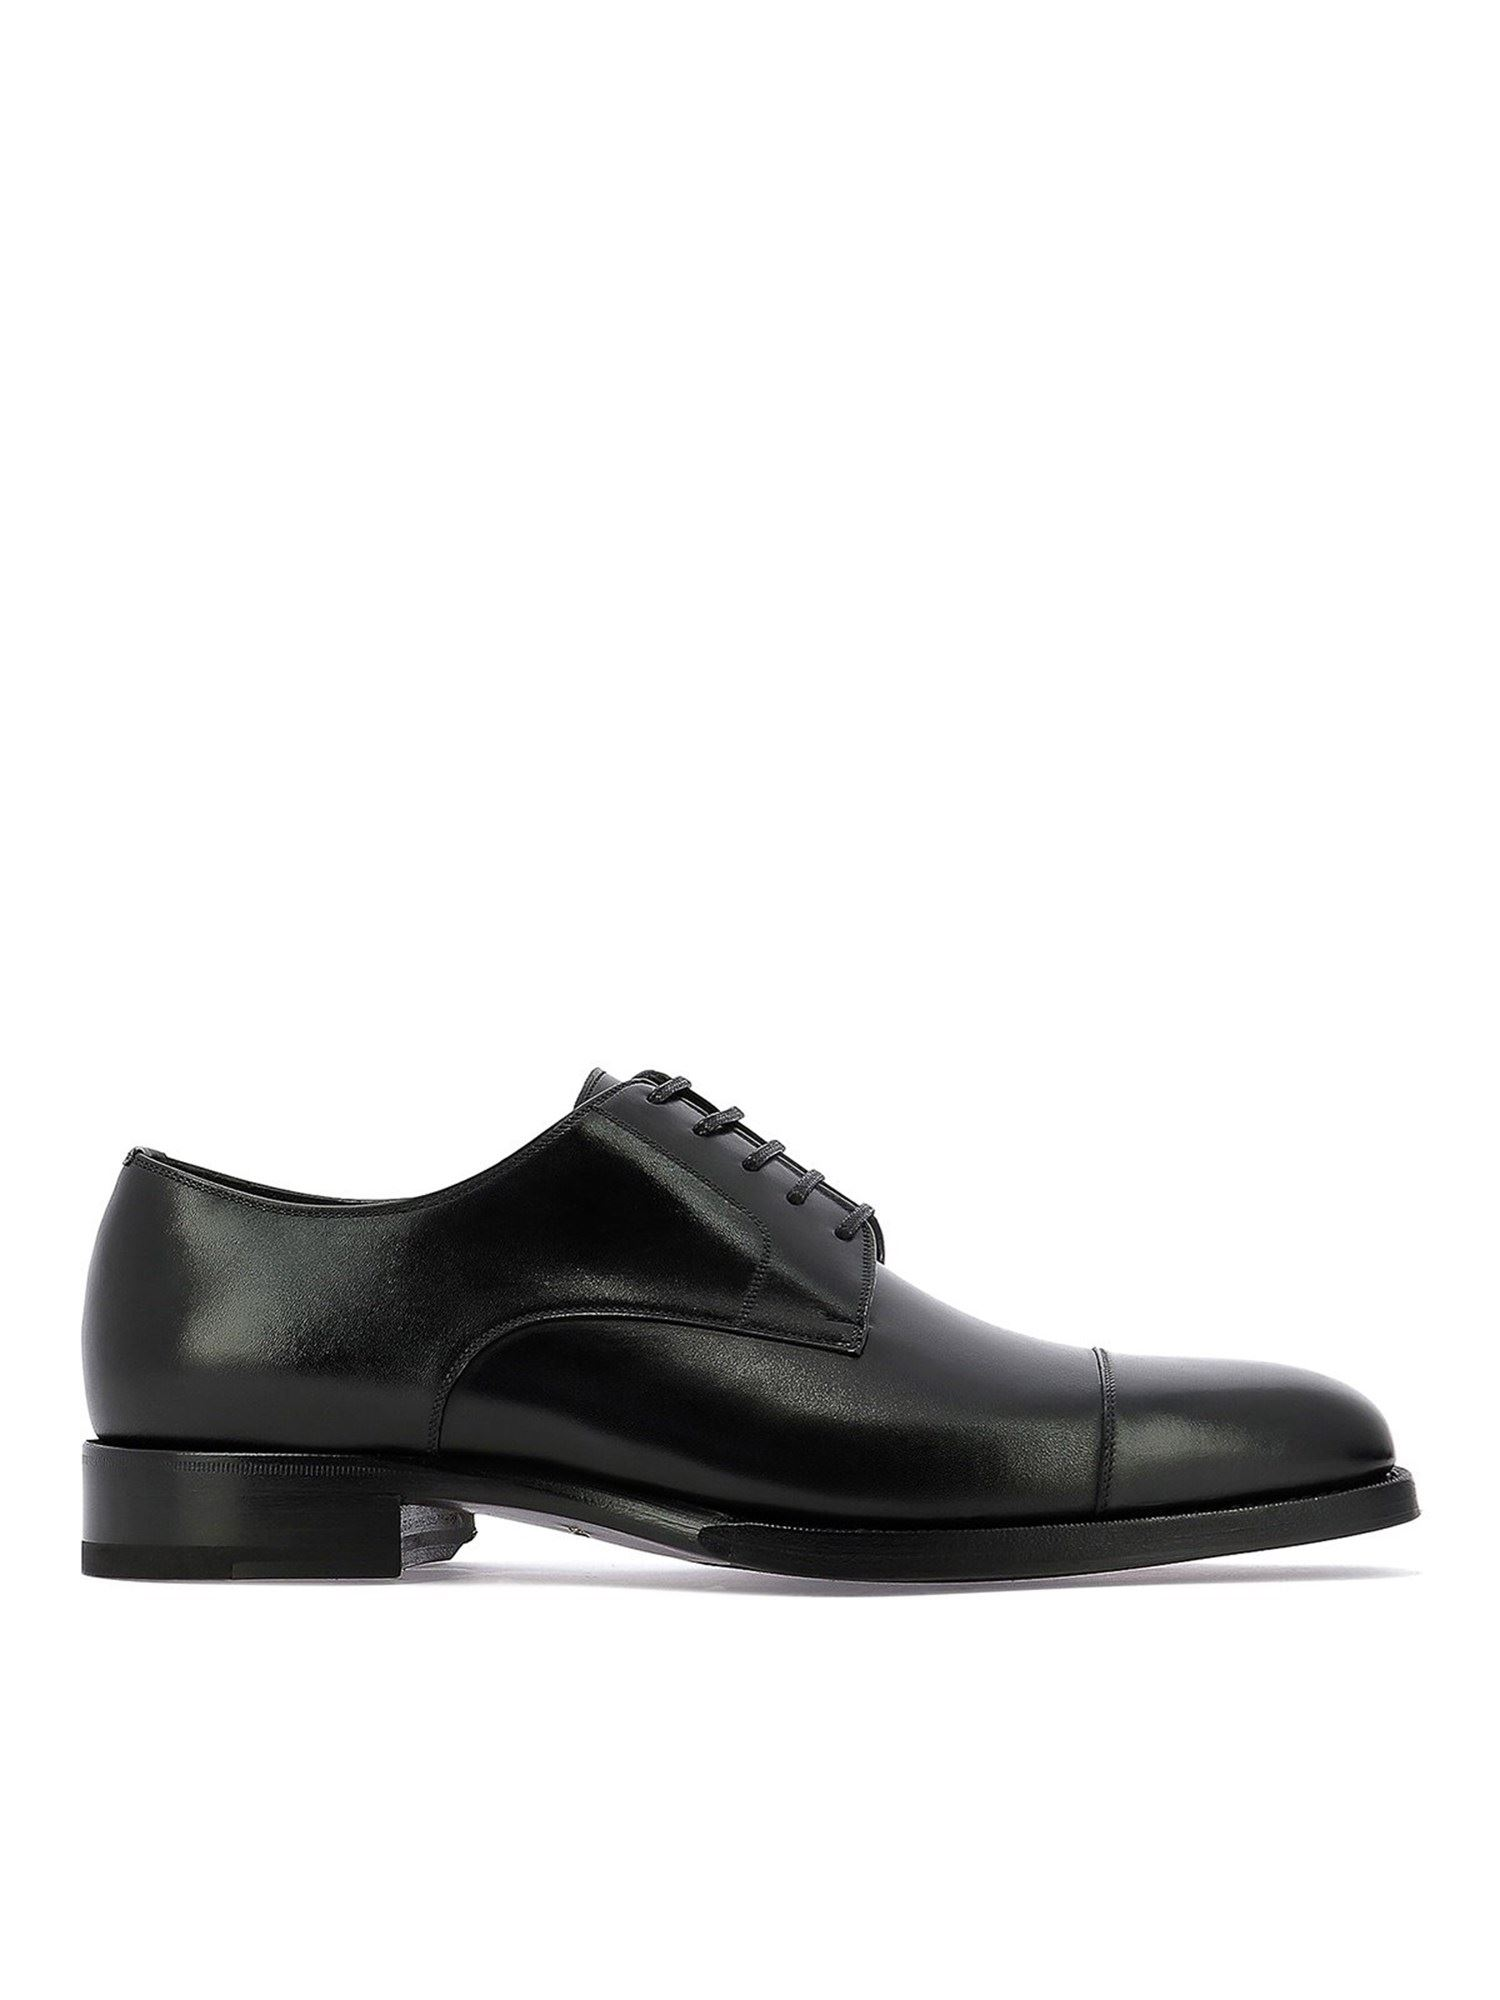 Tom Ford Leathers LEATHER LACE-UPS IN BLACK